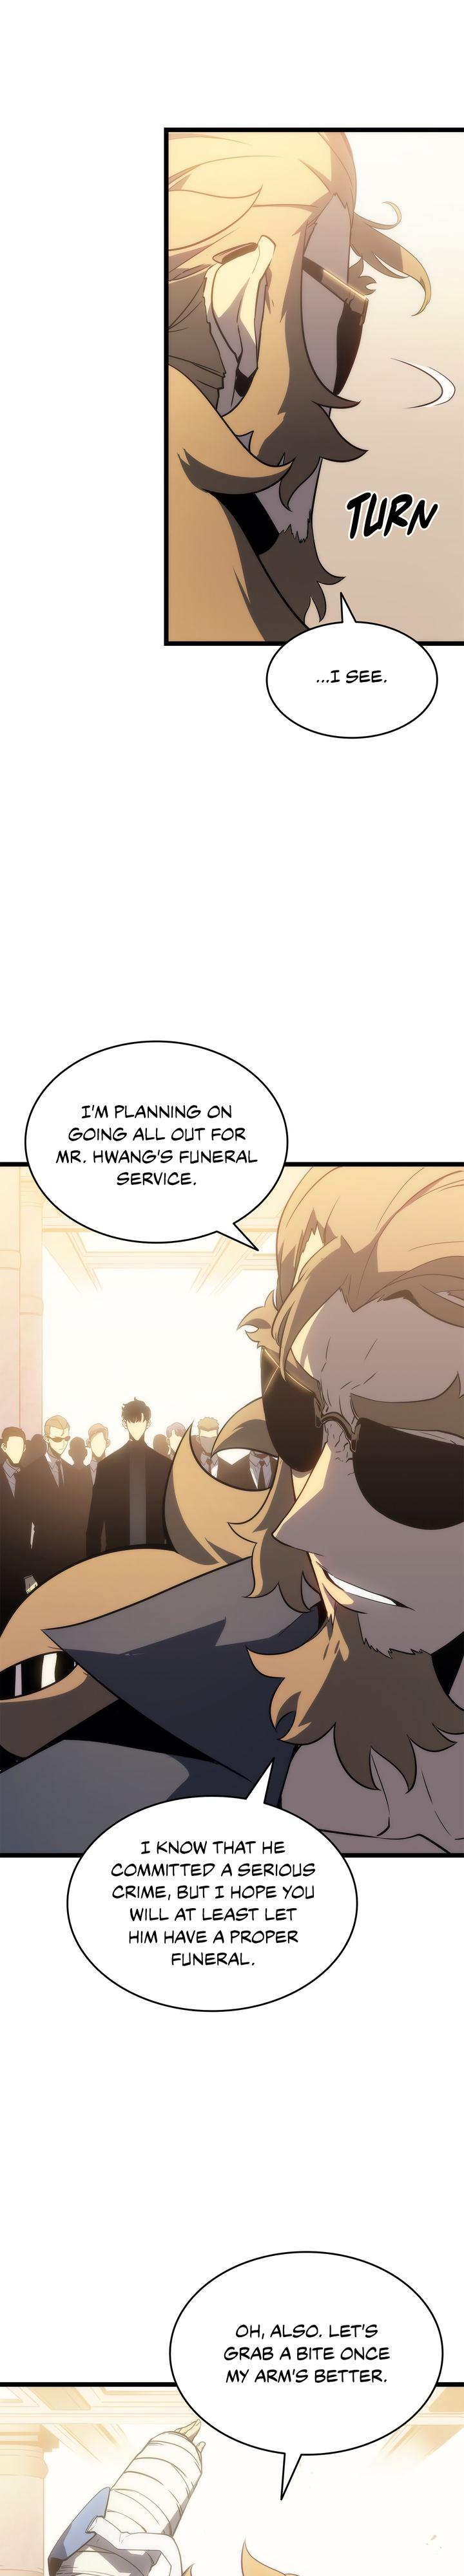 Solo Leveling Chapter 149 Page 36